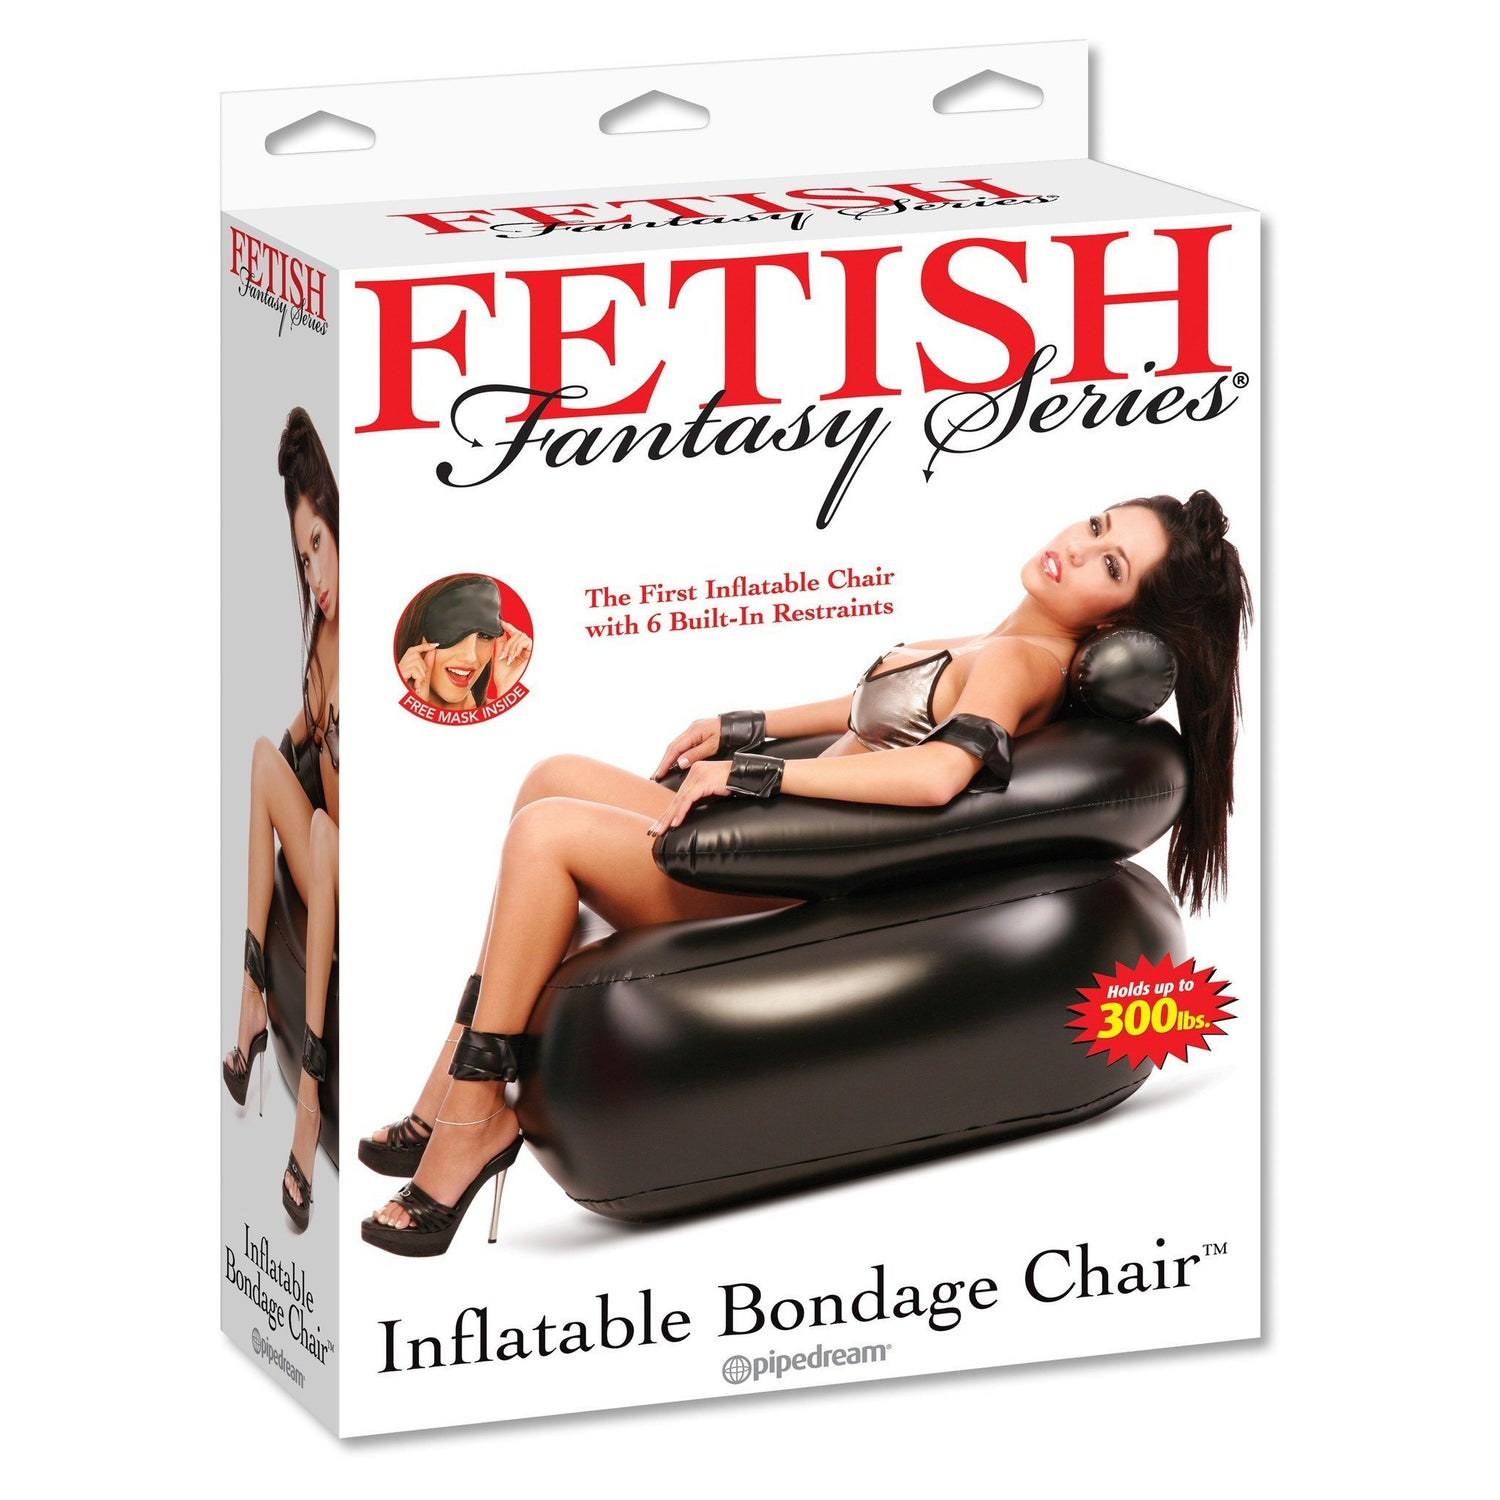 Pipedream - Fetish Fantasy Series Inflatable Bondage Chair (Black) | CherryAffairs Singapore